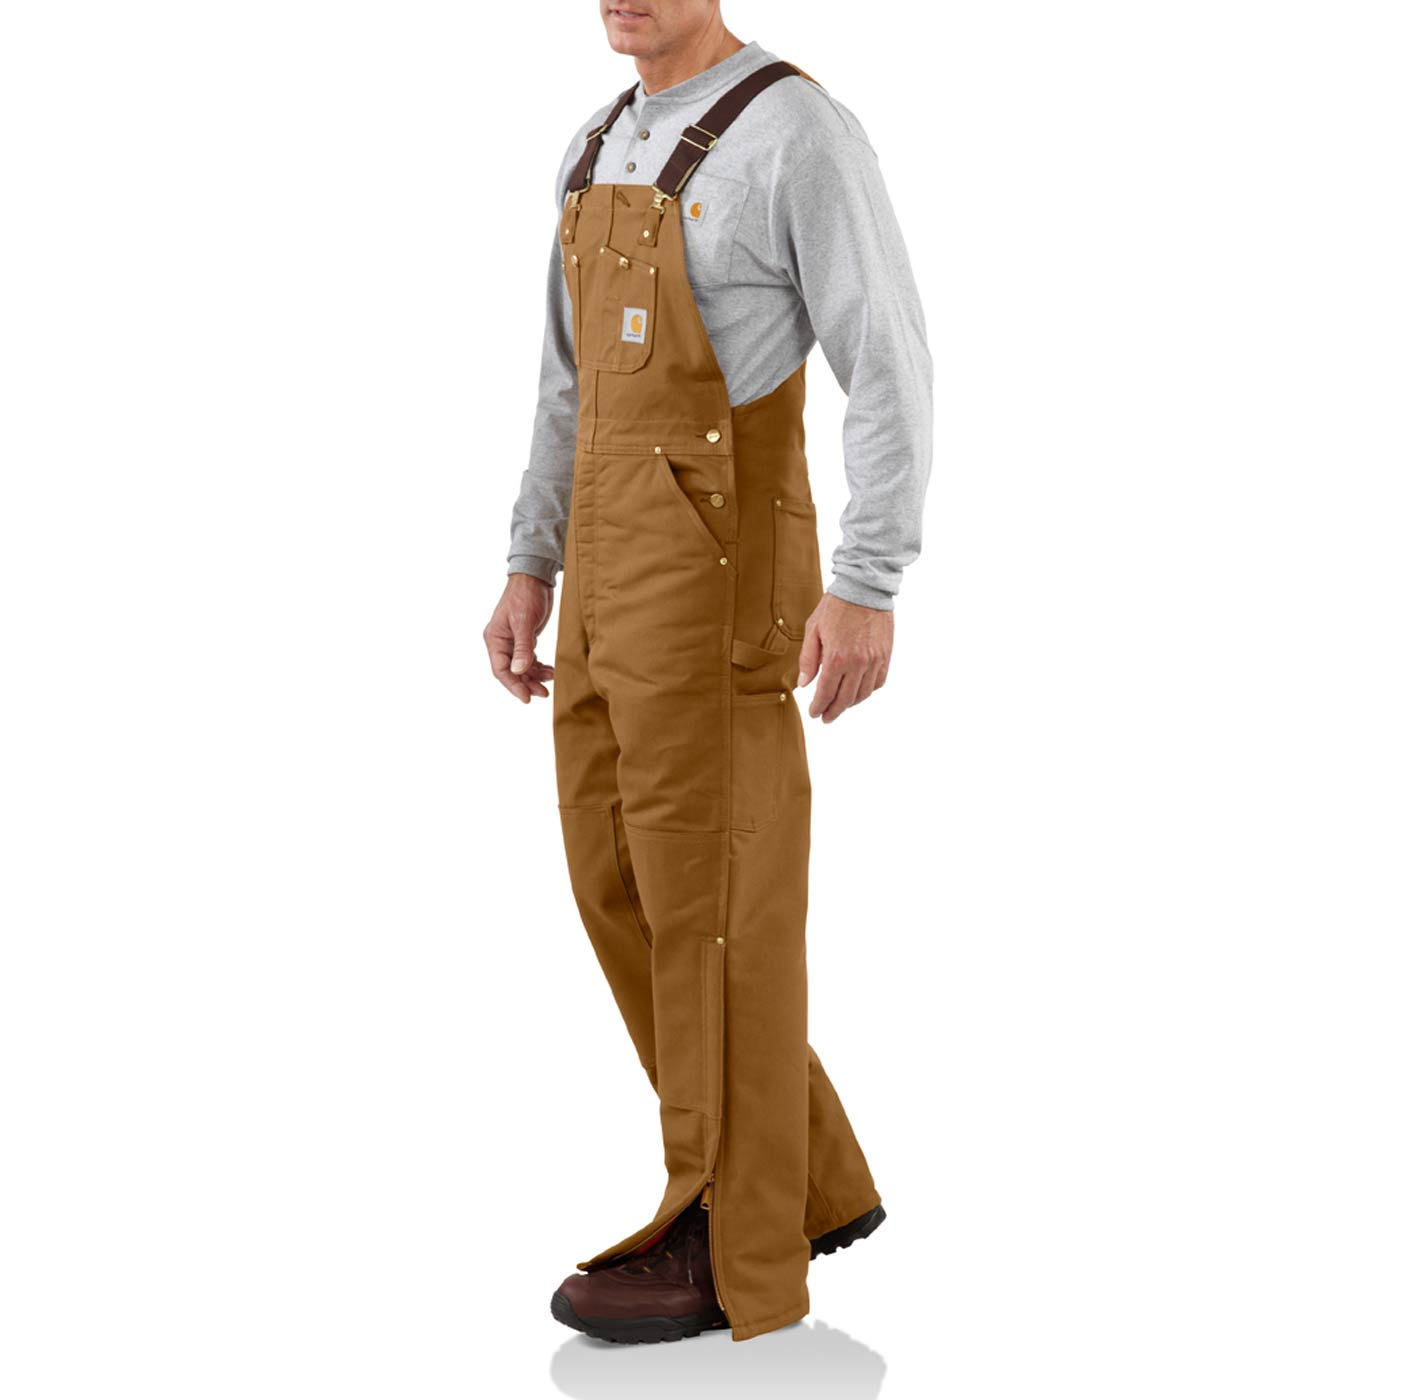 Carhartt Overalls Deals On 1001 Blocks